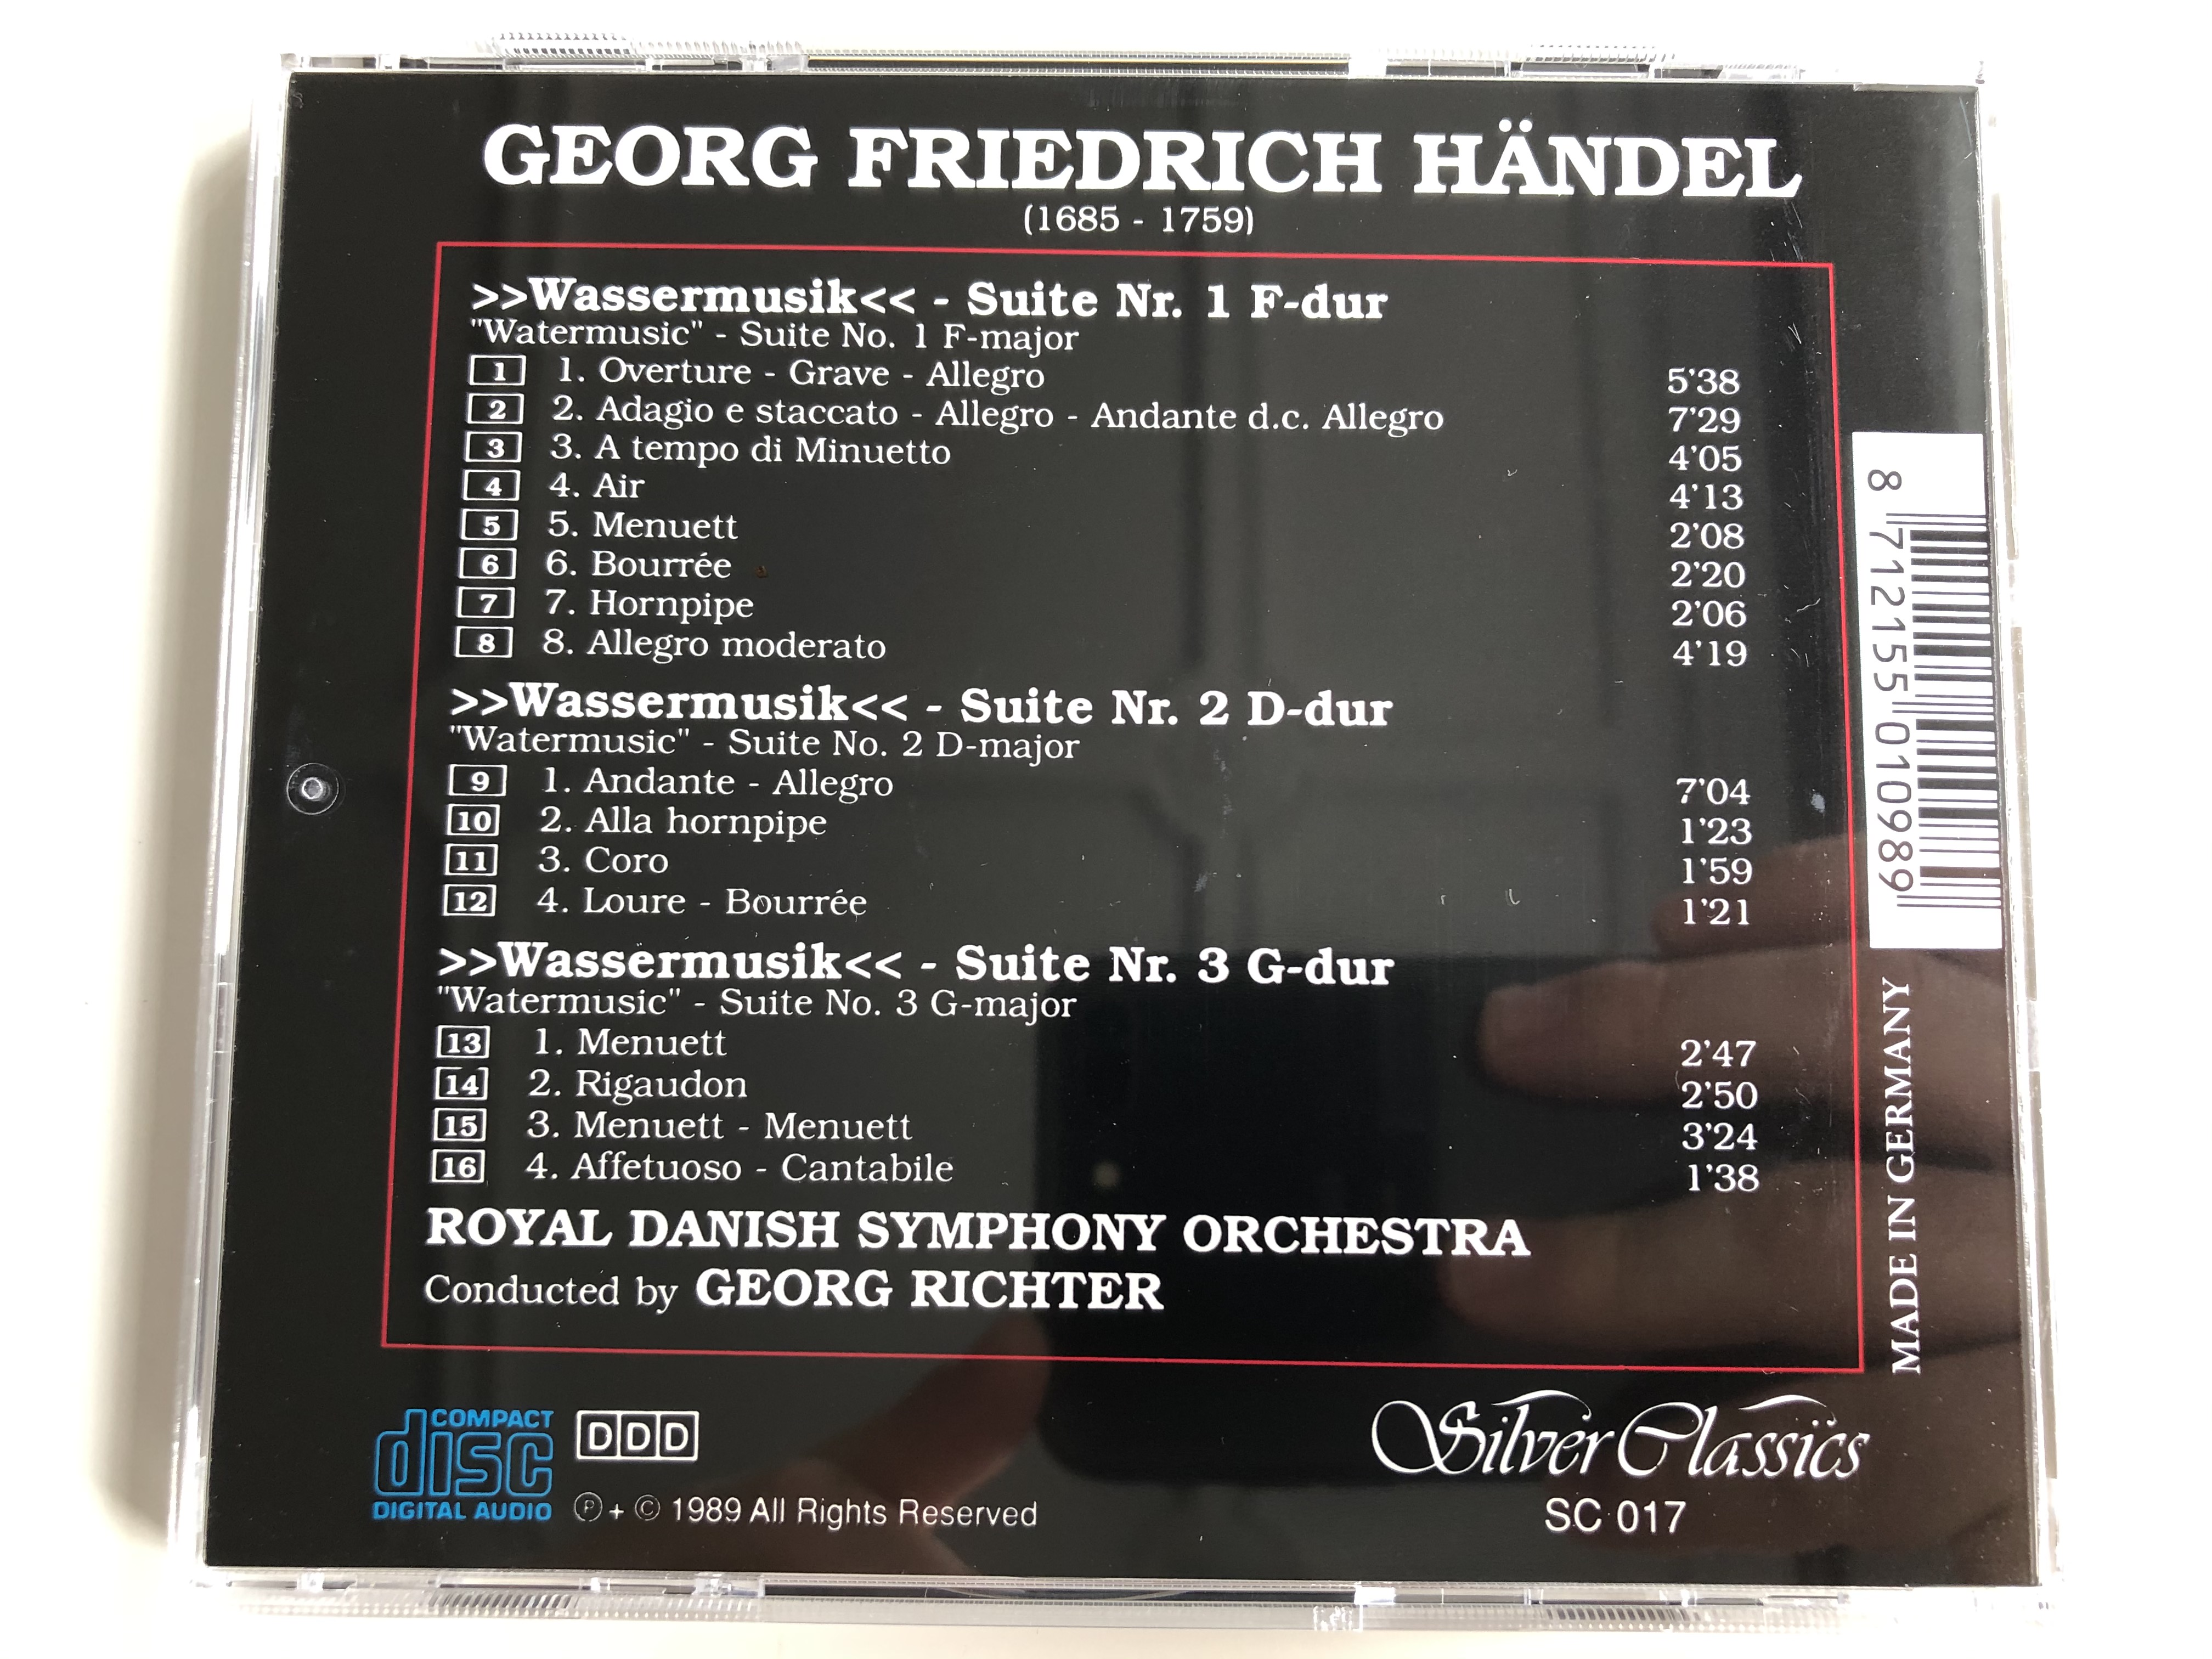 georg-friedrich-handel-wassermusik-suite-nr.-1-3-royal-danish-symphony-orchestra-conducted-by-georg-richter-silver-classics-audio-cd-1989-sc-017-4-.jpg